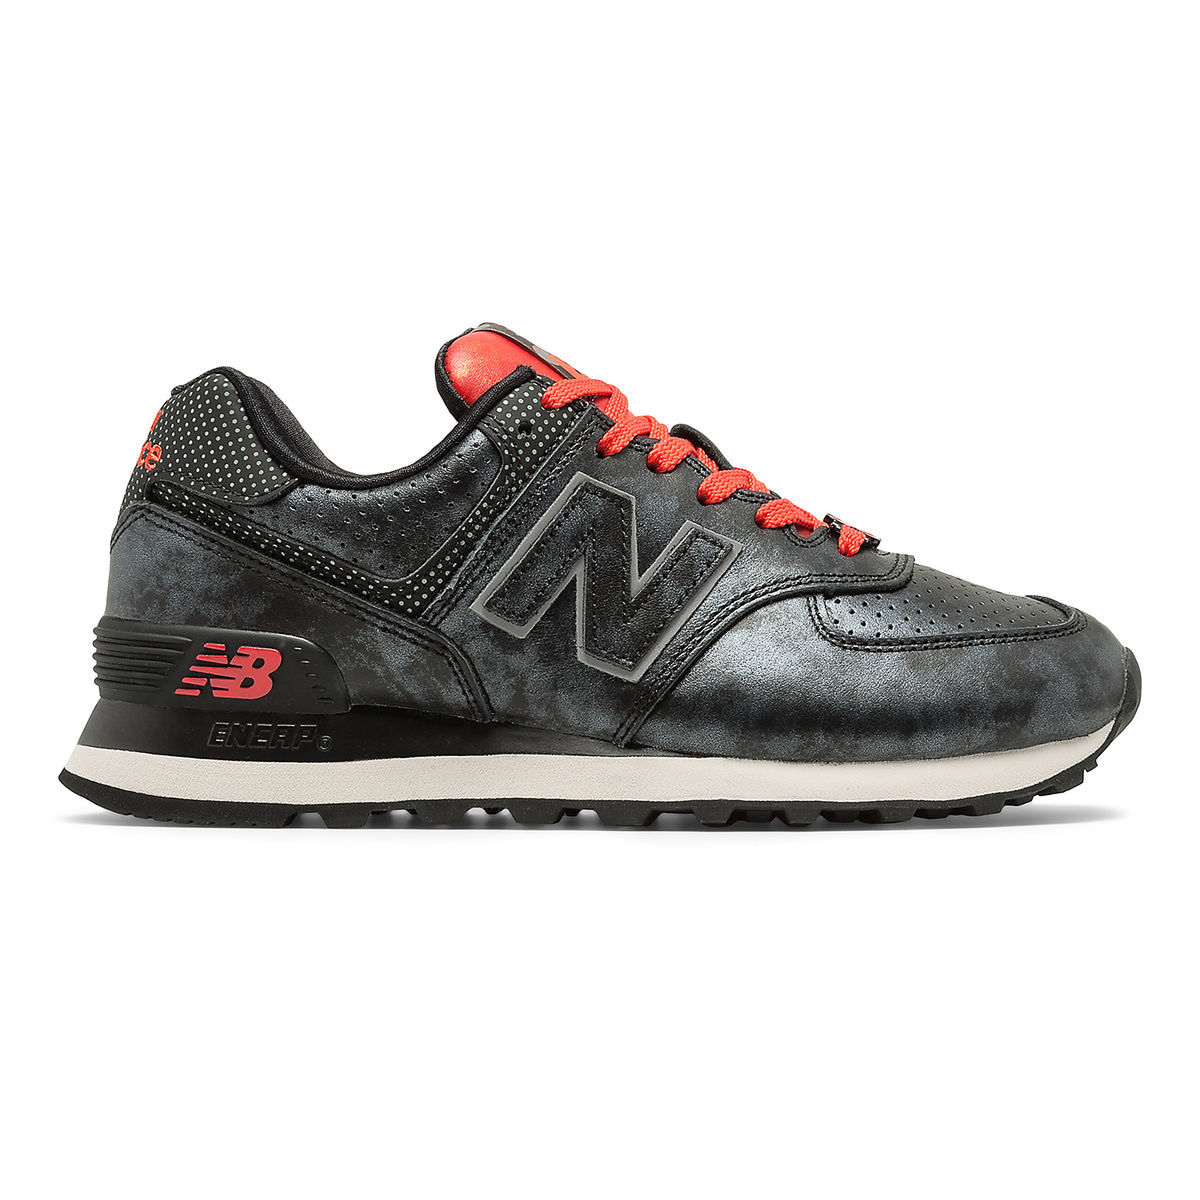 Product Image of Minnie Mouse 574 Sneakers for Women by New Balance # 1